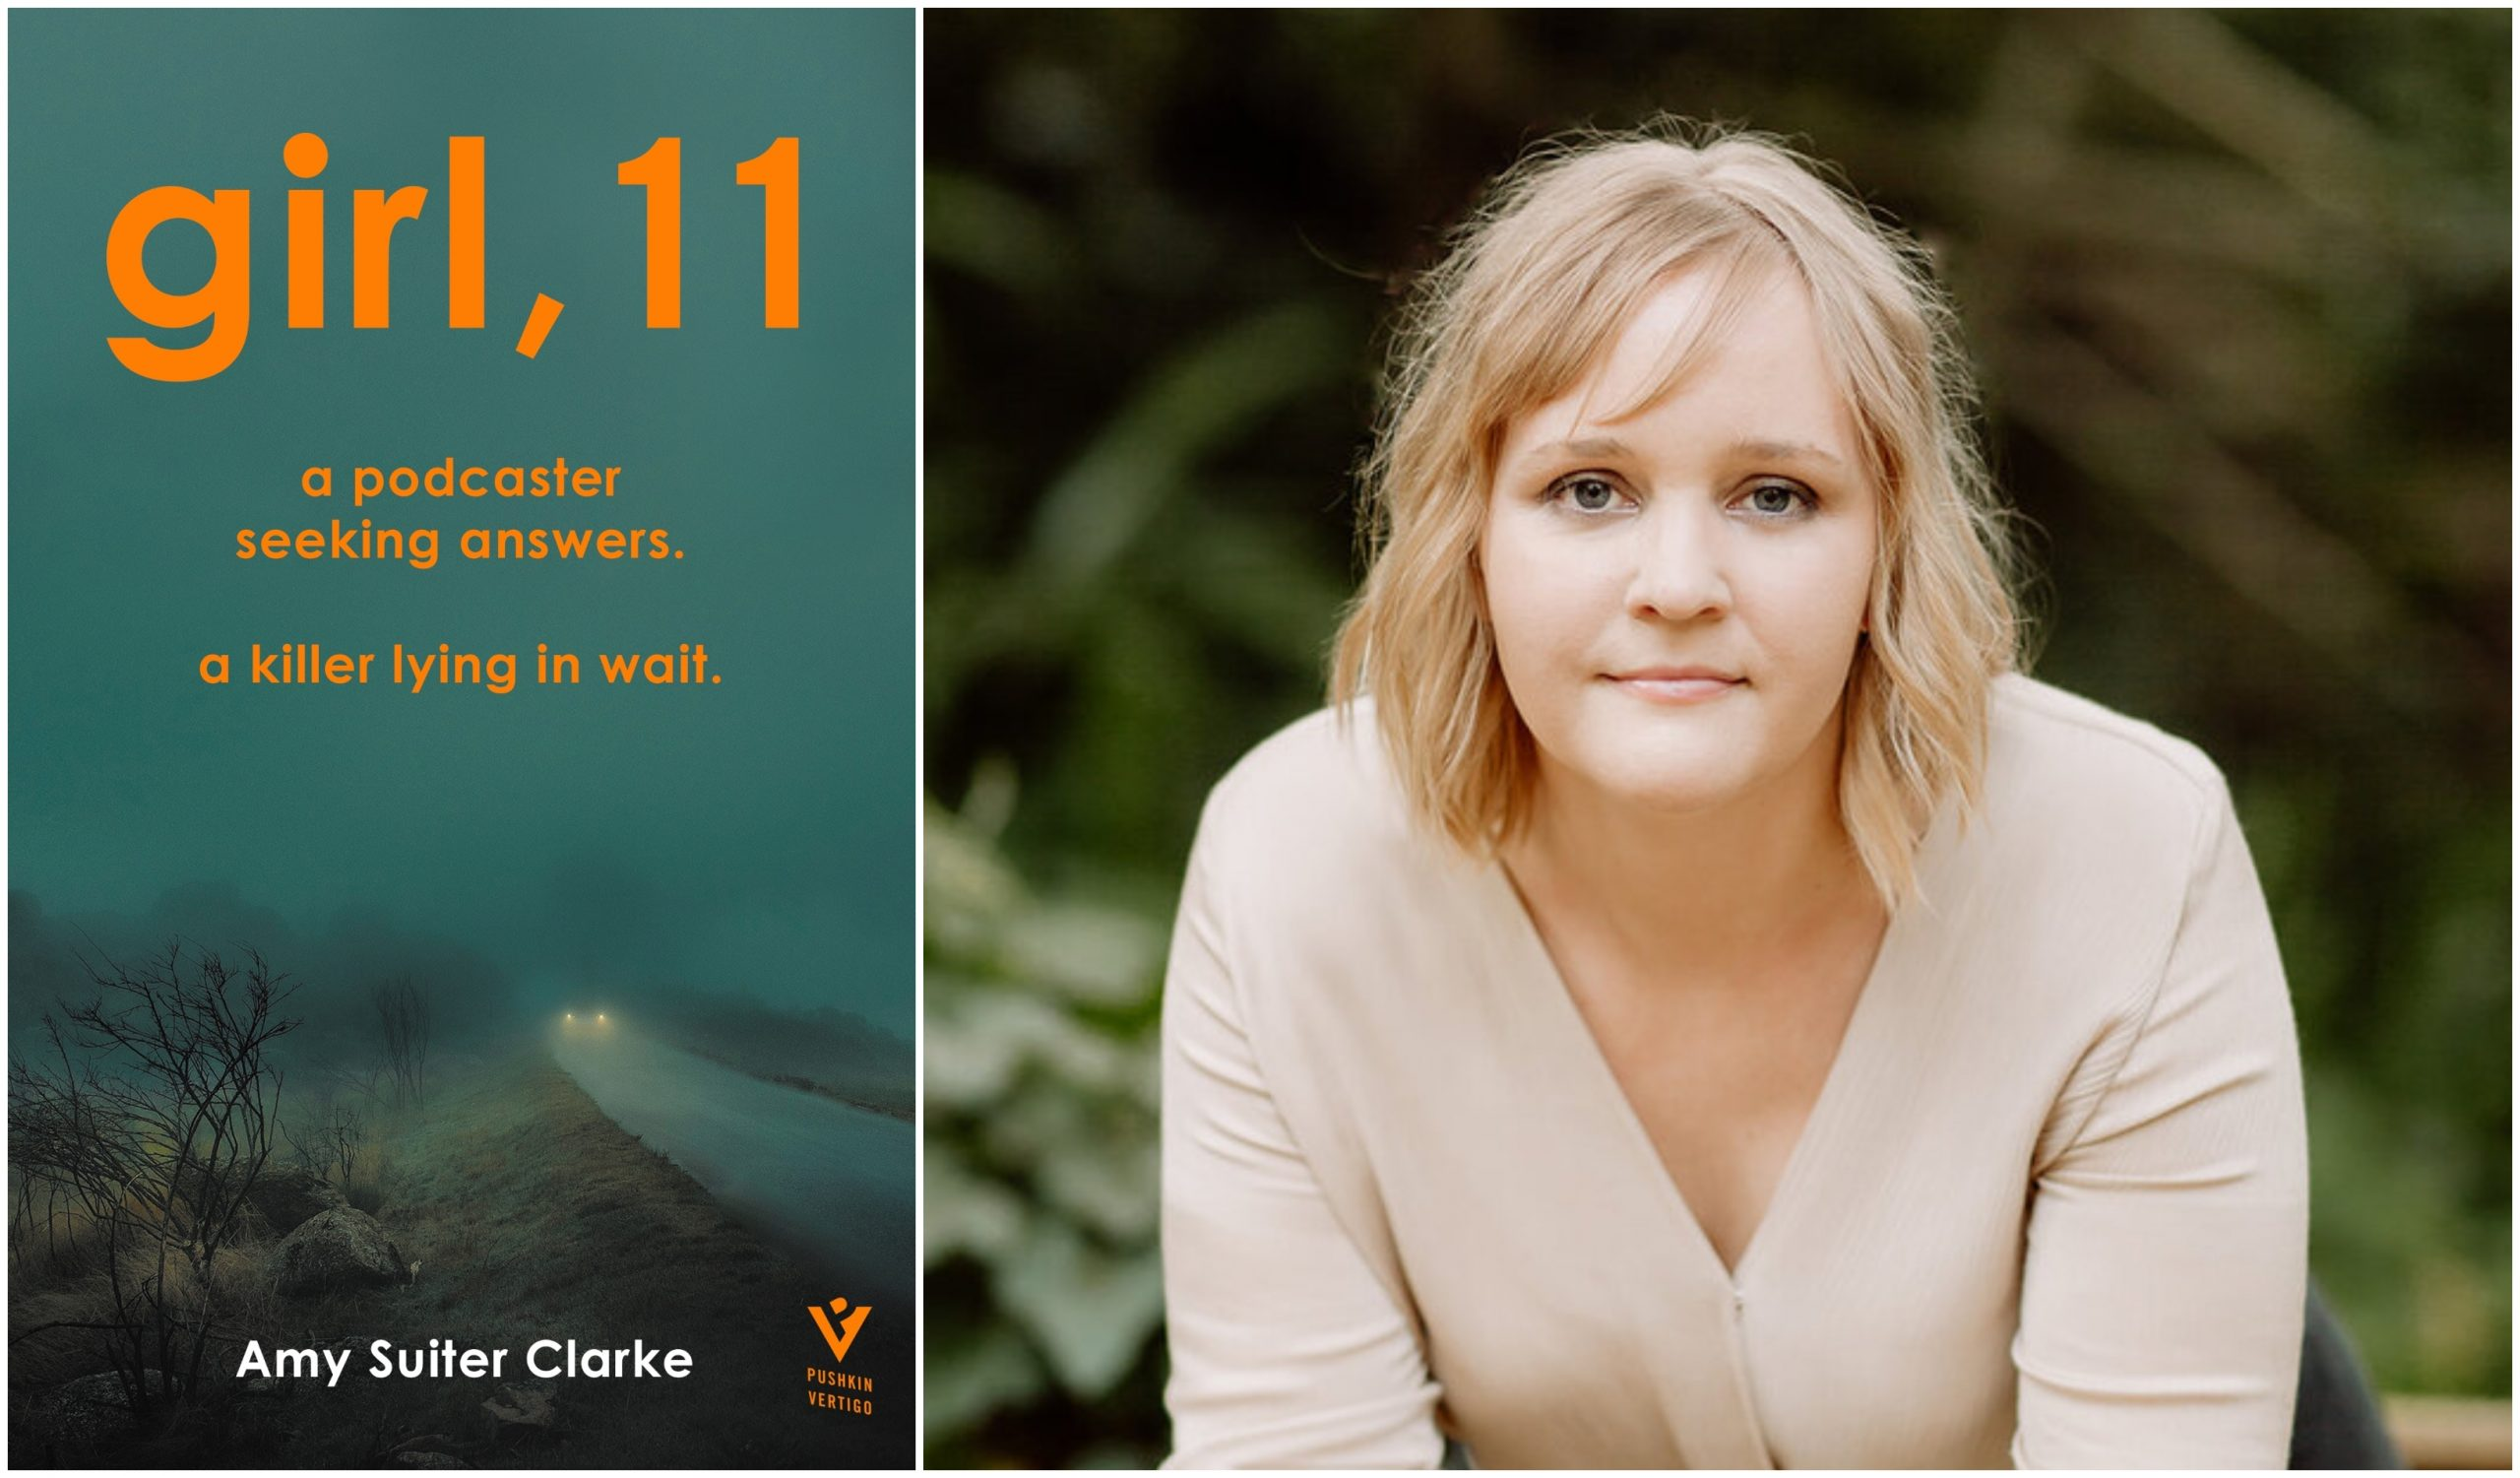 Amy Suiter Clarke's debut novel GIRL, 11 comes out June 2021 in the UK.